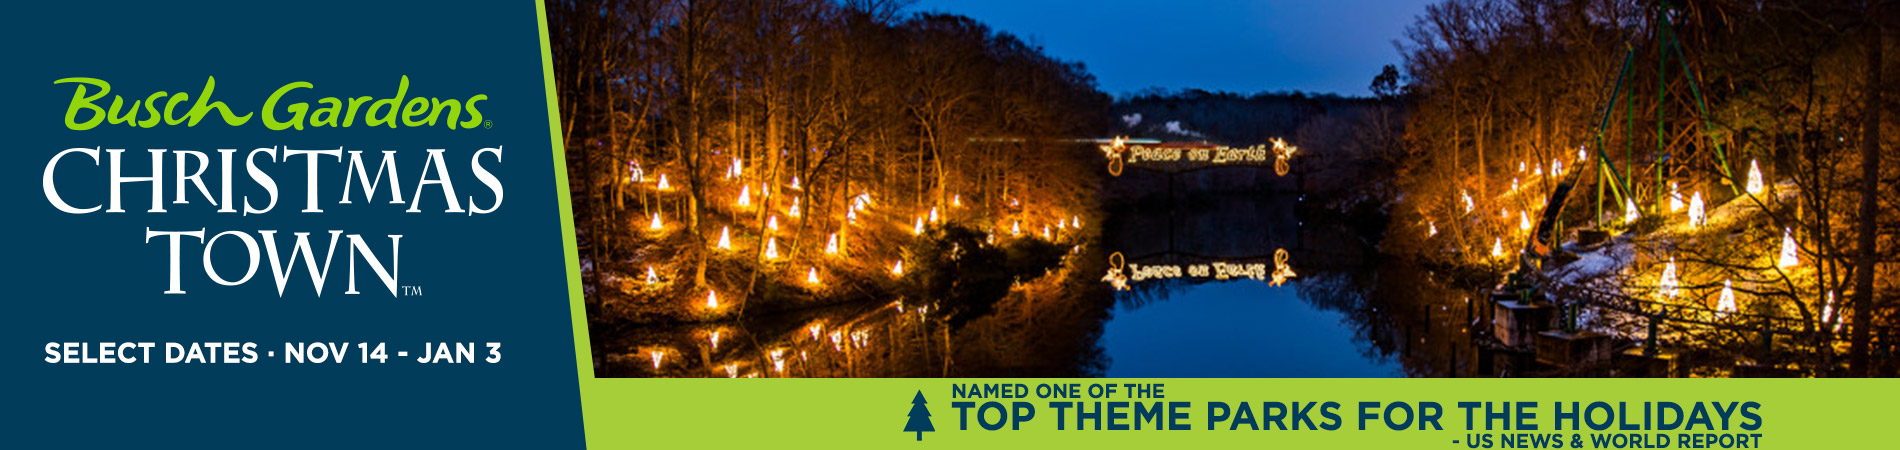 Christmas Town at Busch Gardens Williamsburg - Featuring over 10 Million dazzling lights!